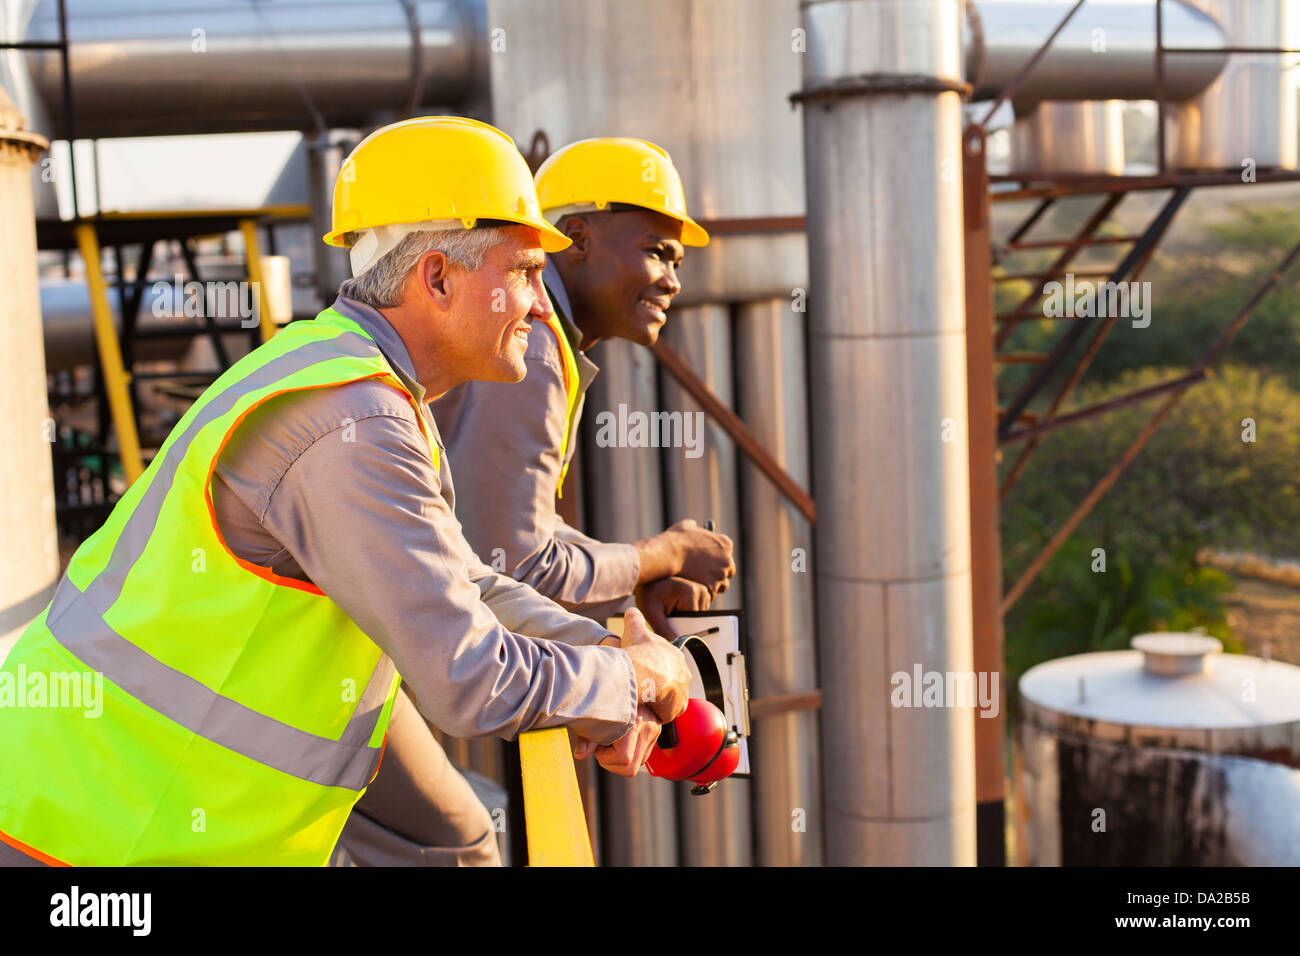 smiling industrial workers in safety gear - Stock Image